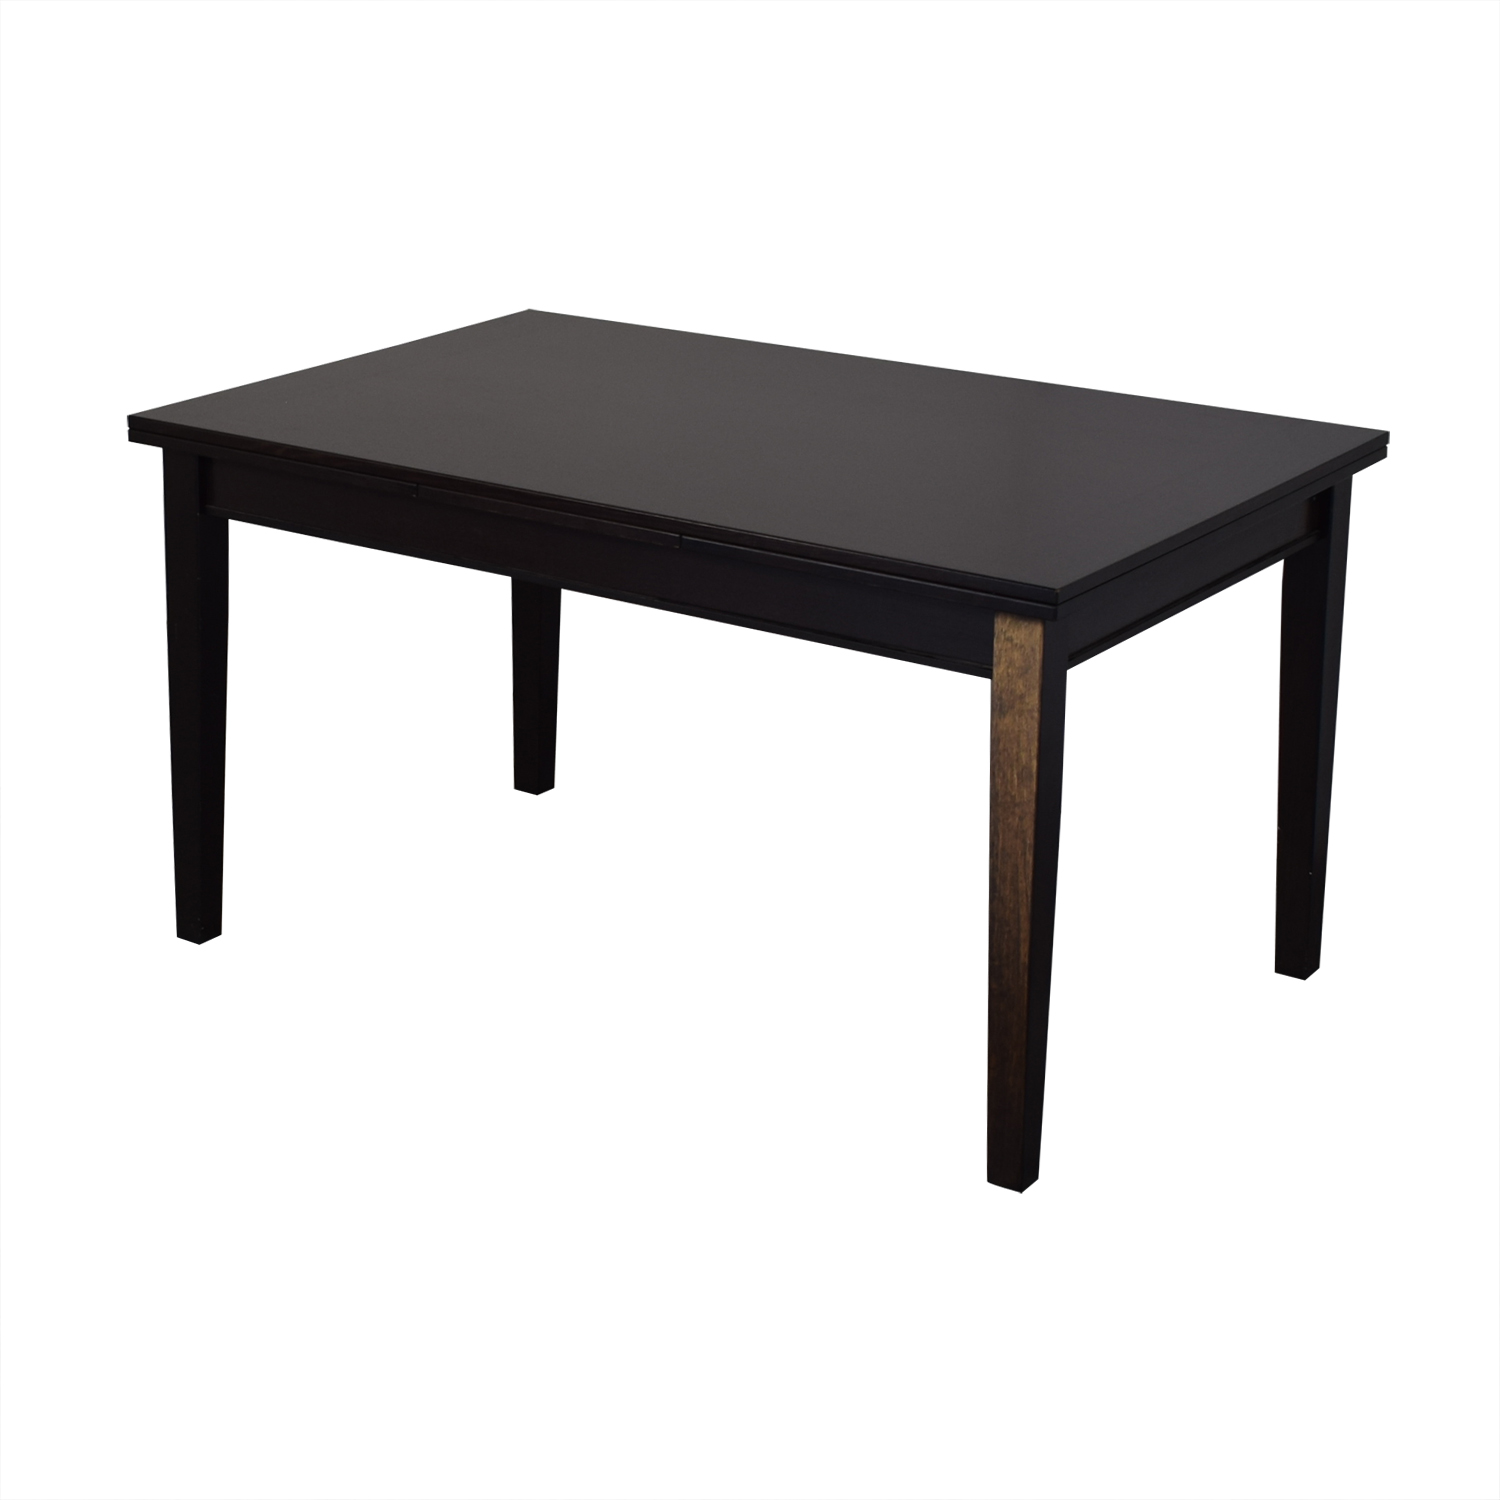 Crate & Barrel Crate & Barrel Pratico Bruno Extension Square Dining Table price